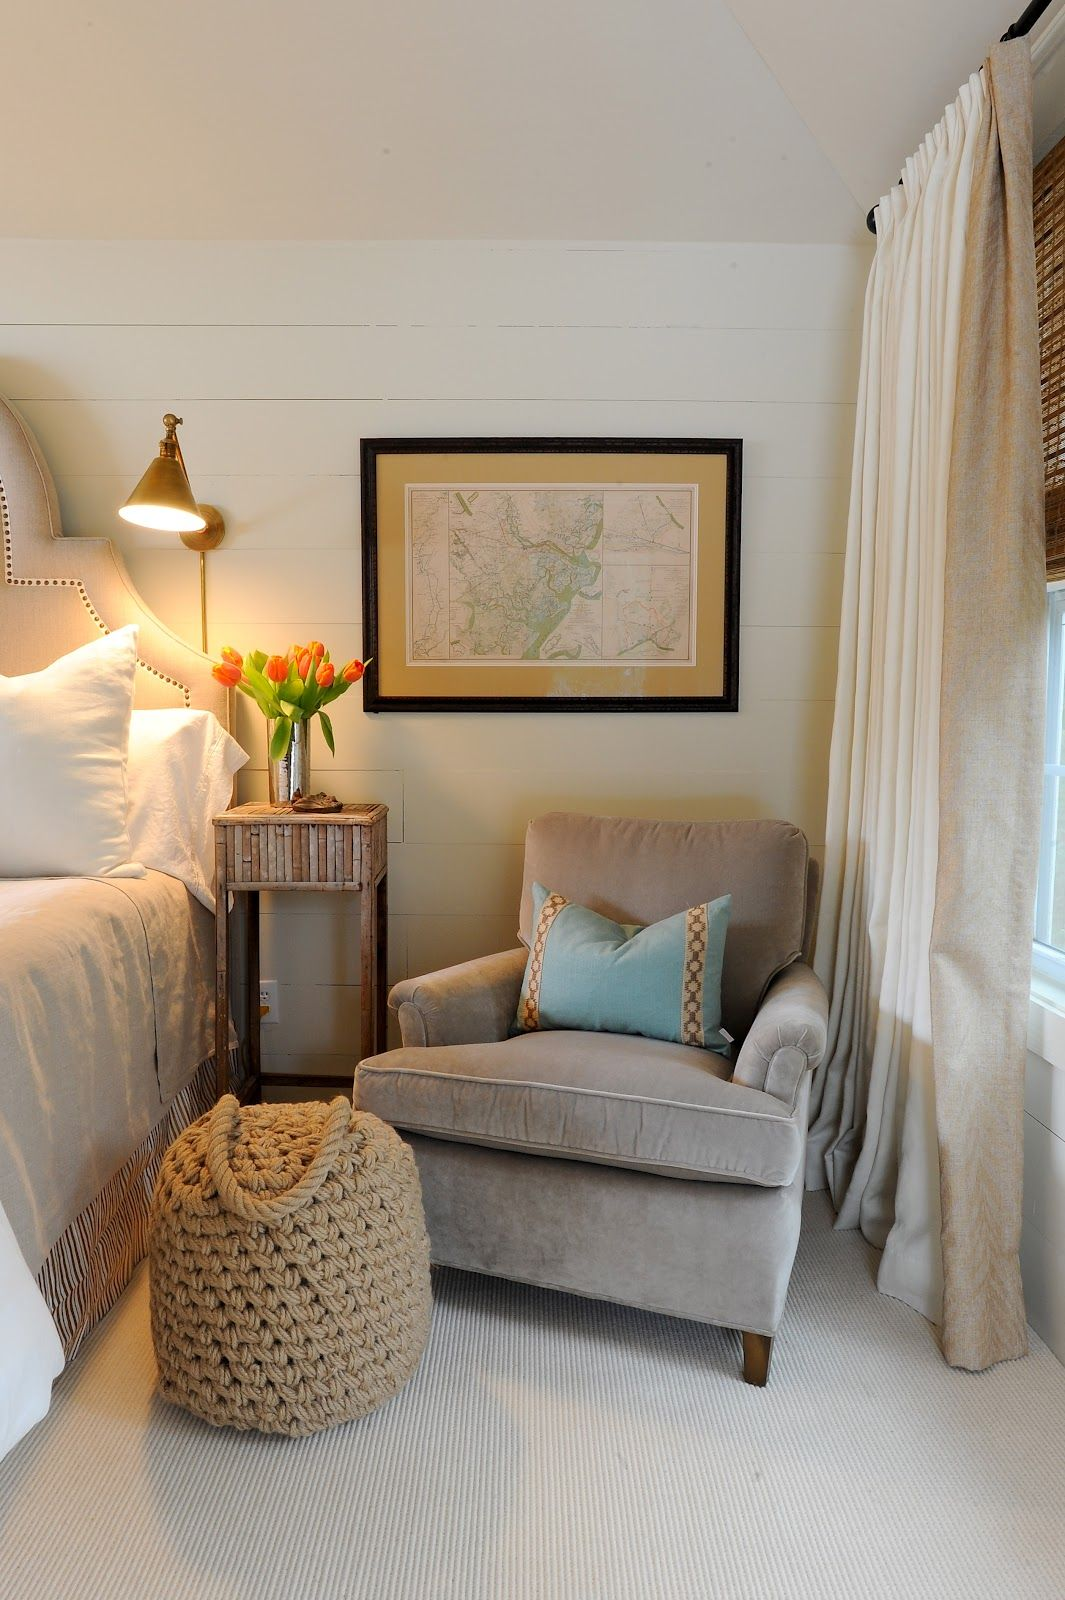 A Cozy Club Chair Adds Warmth To A Master Bedroom Chair On One Side And Small Table Or Rocking